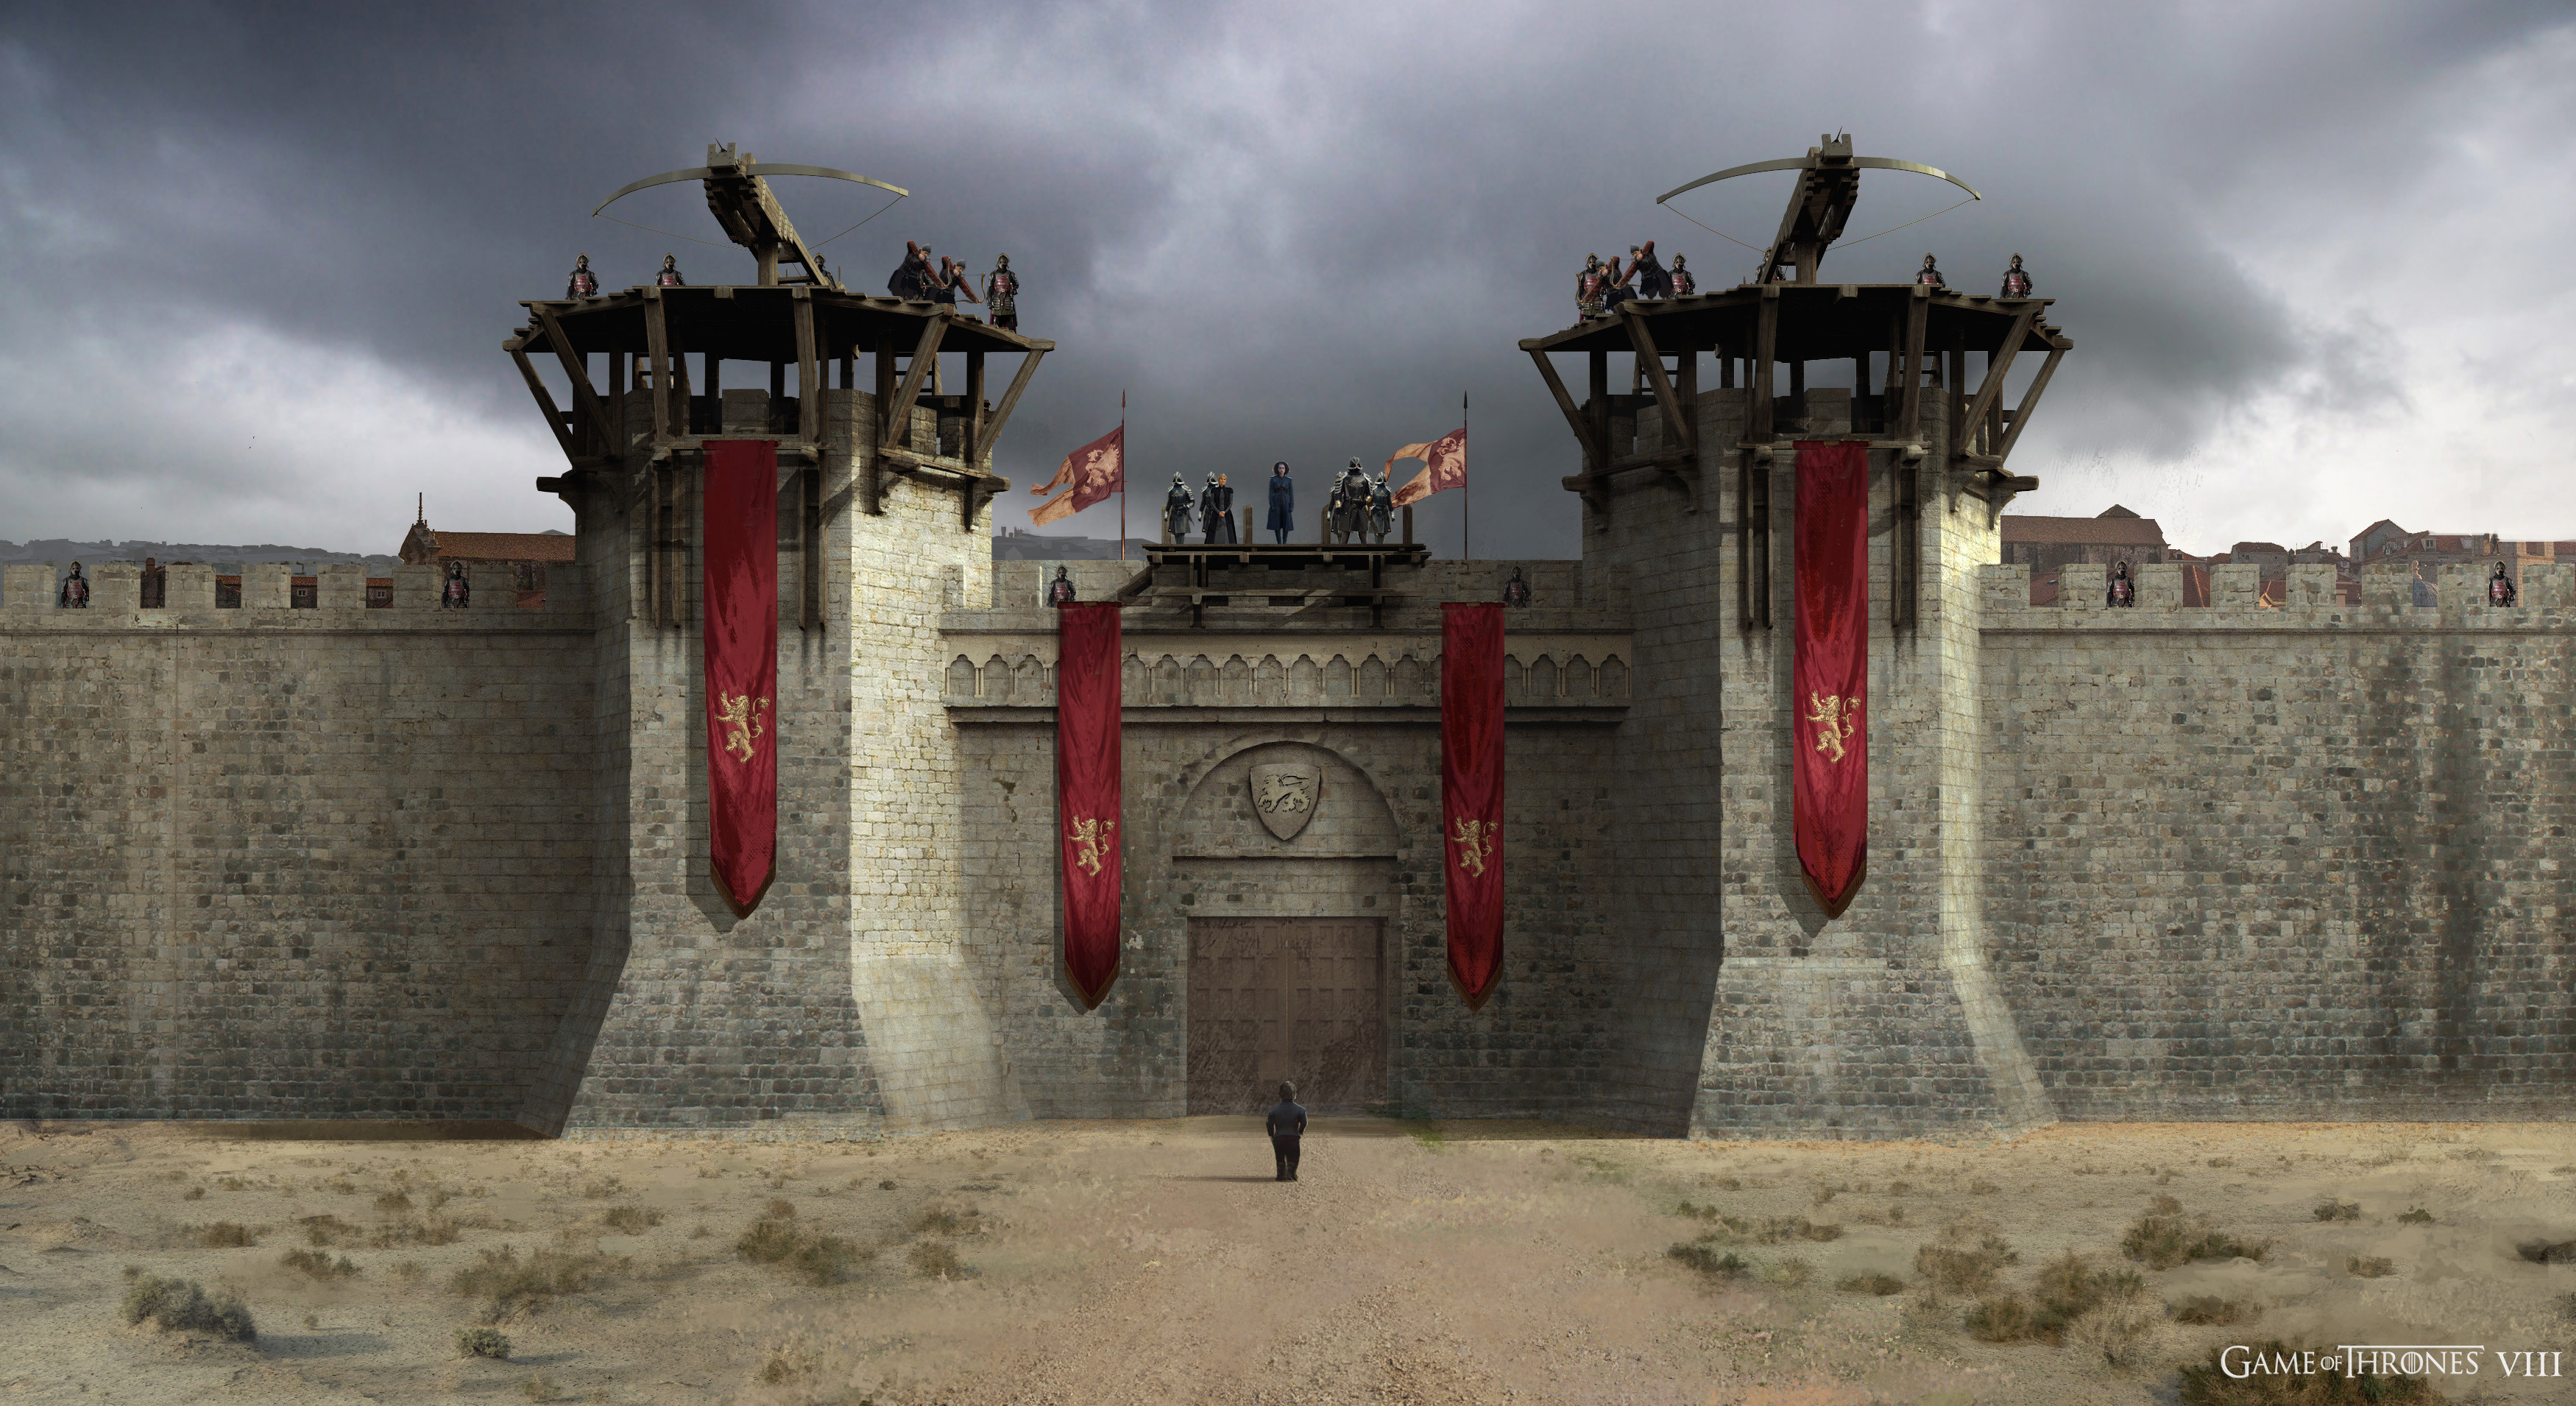 View of the Kingslanding Gate from Daenerys' POV